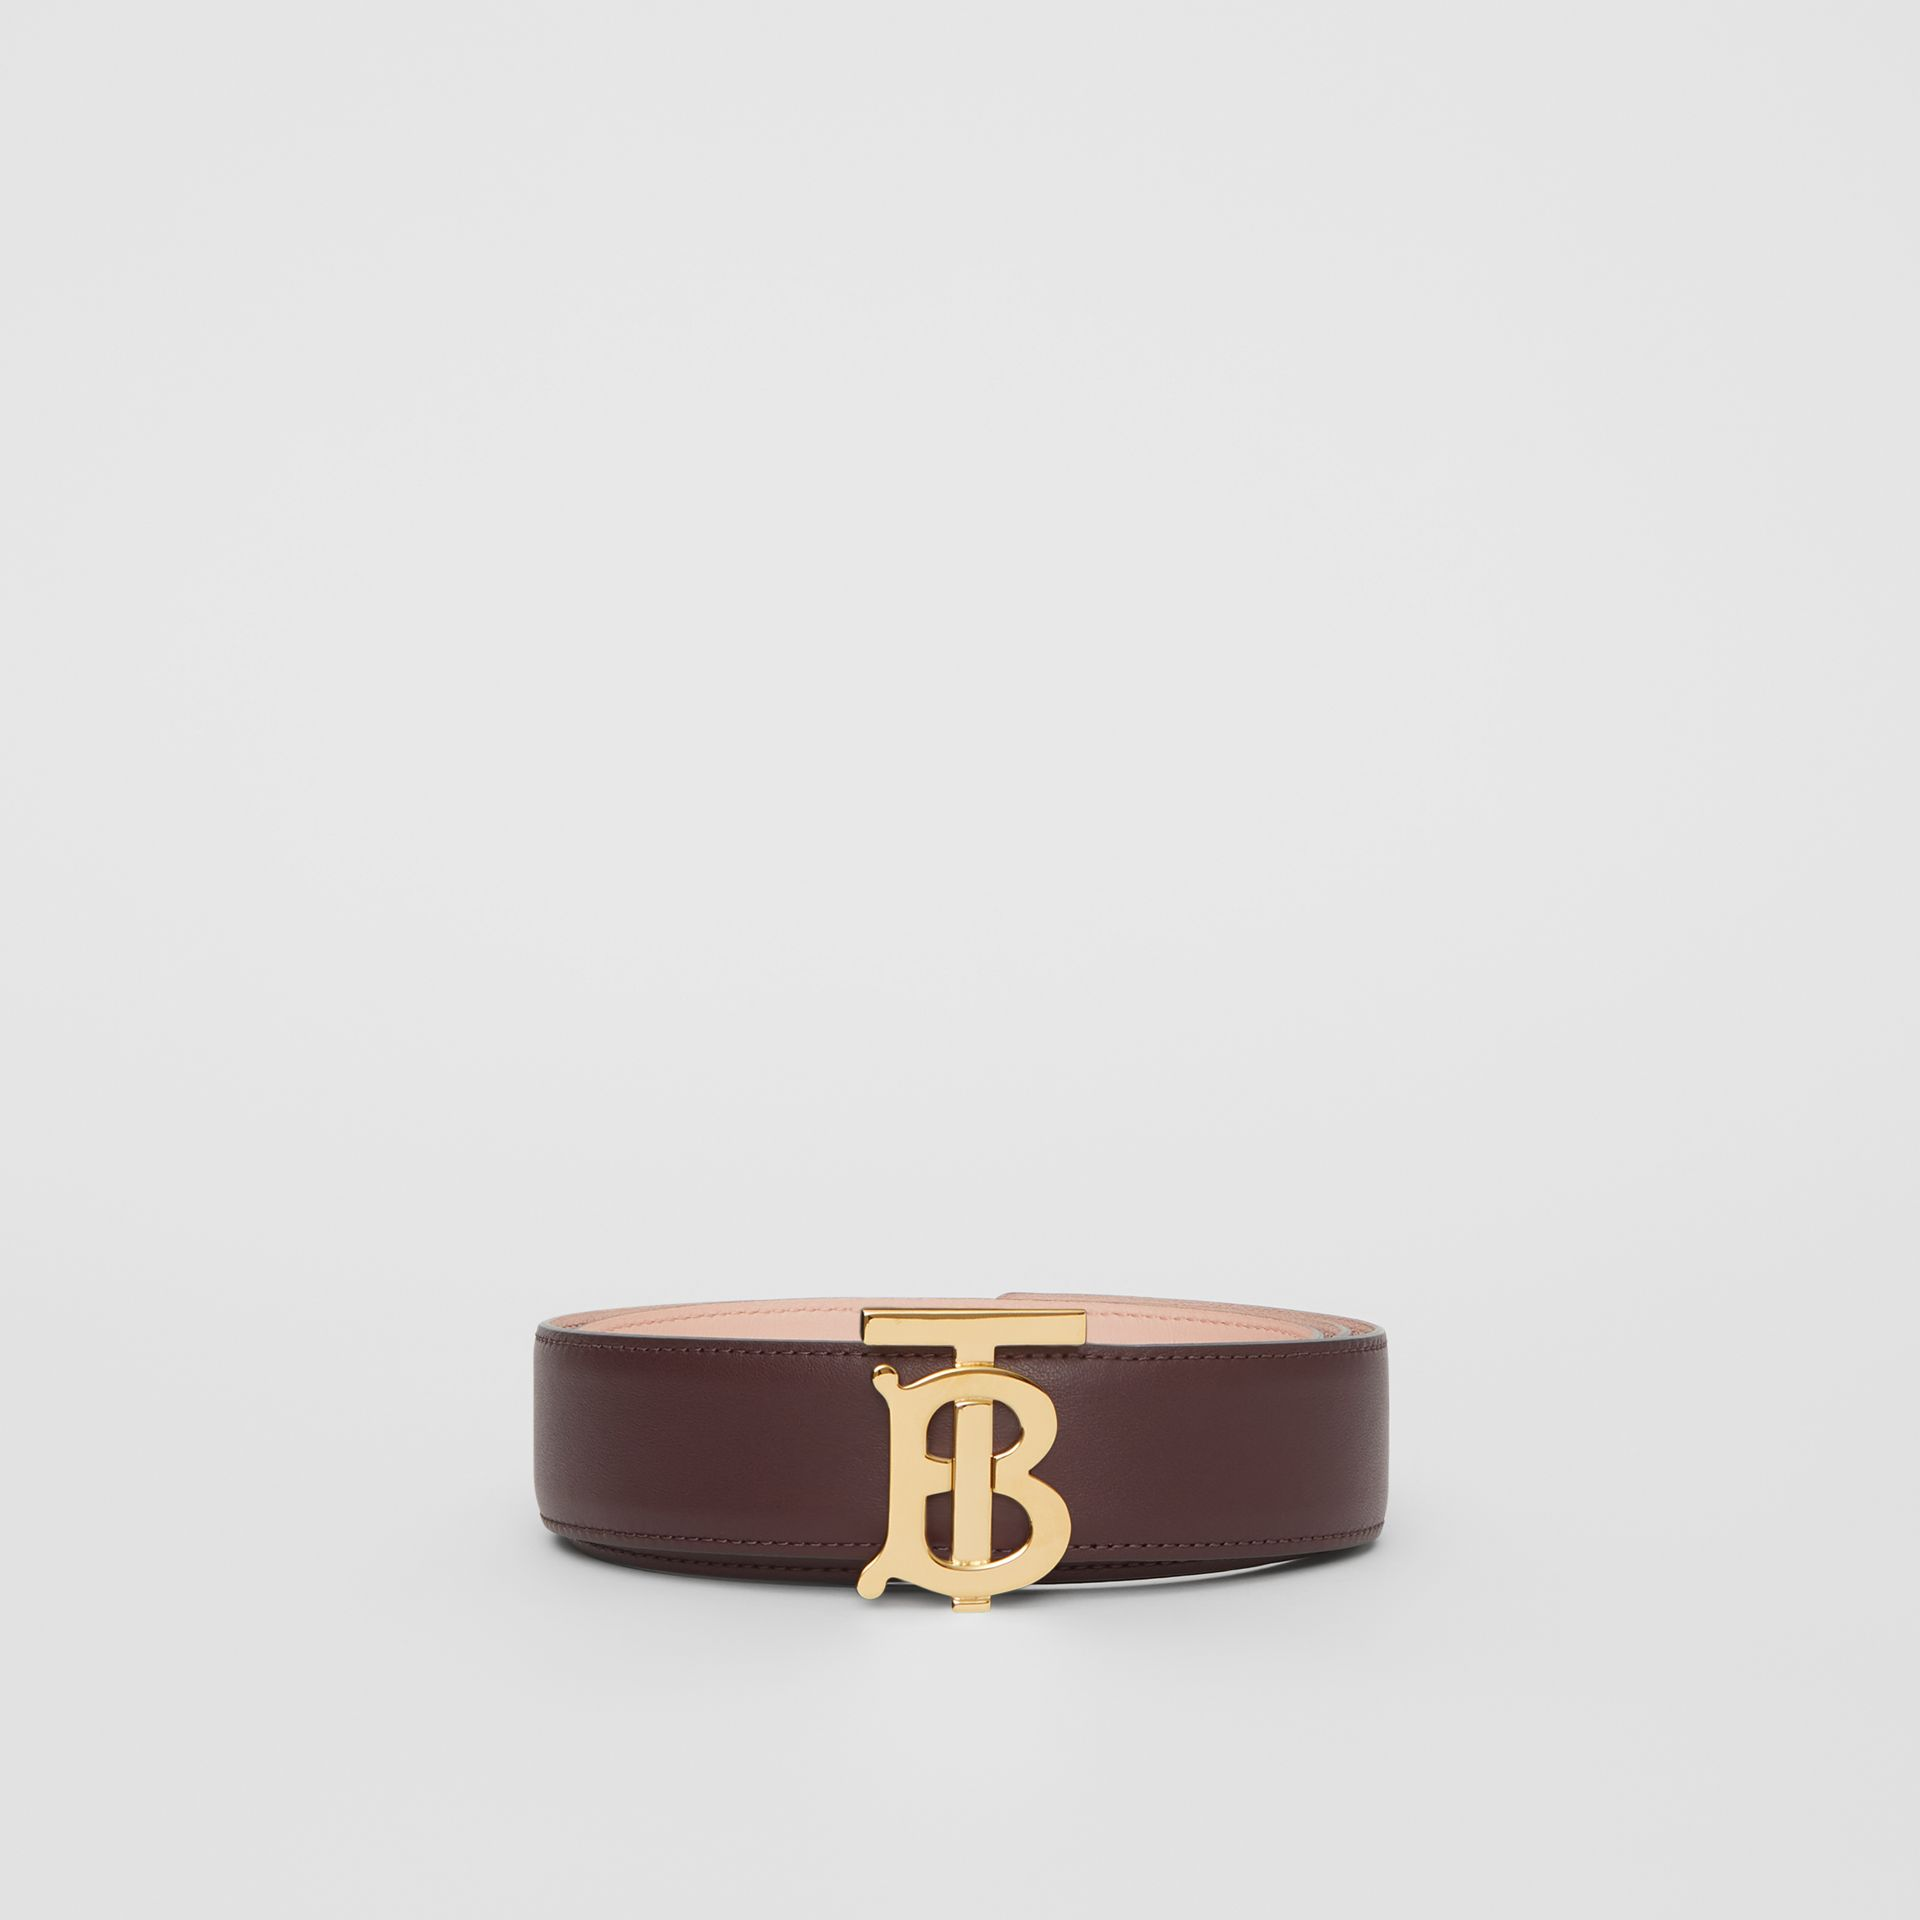 Ceinture en cuir réversible Monogram (Oxblood/beige Rose) - Femme | Burberry Canada - photo de la galerie 3